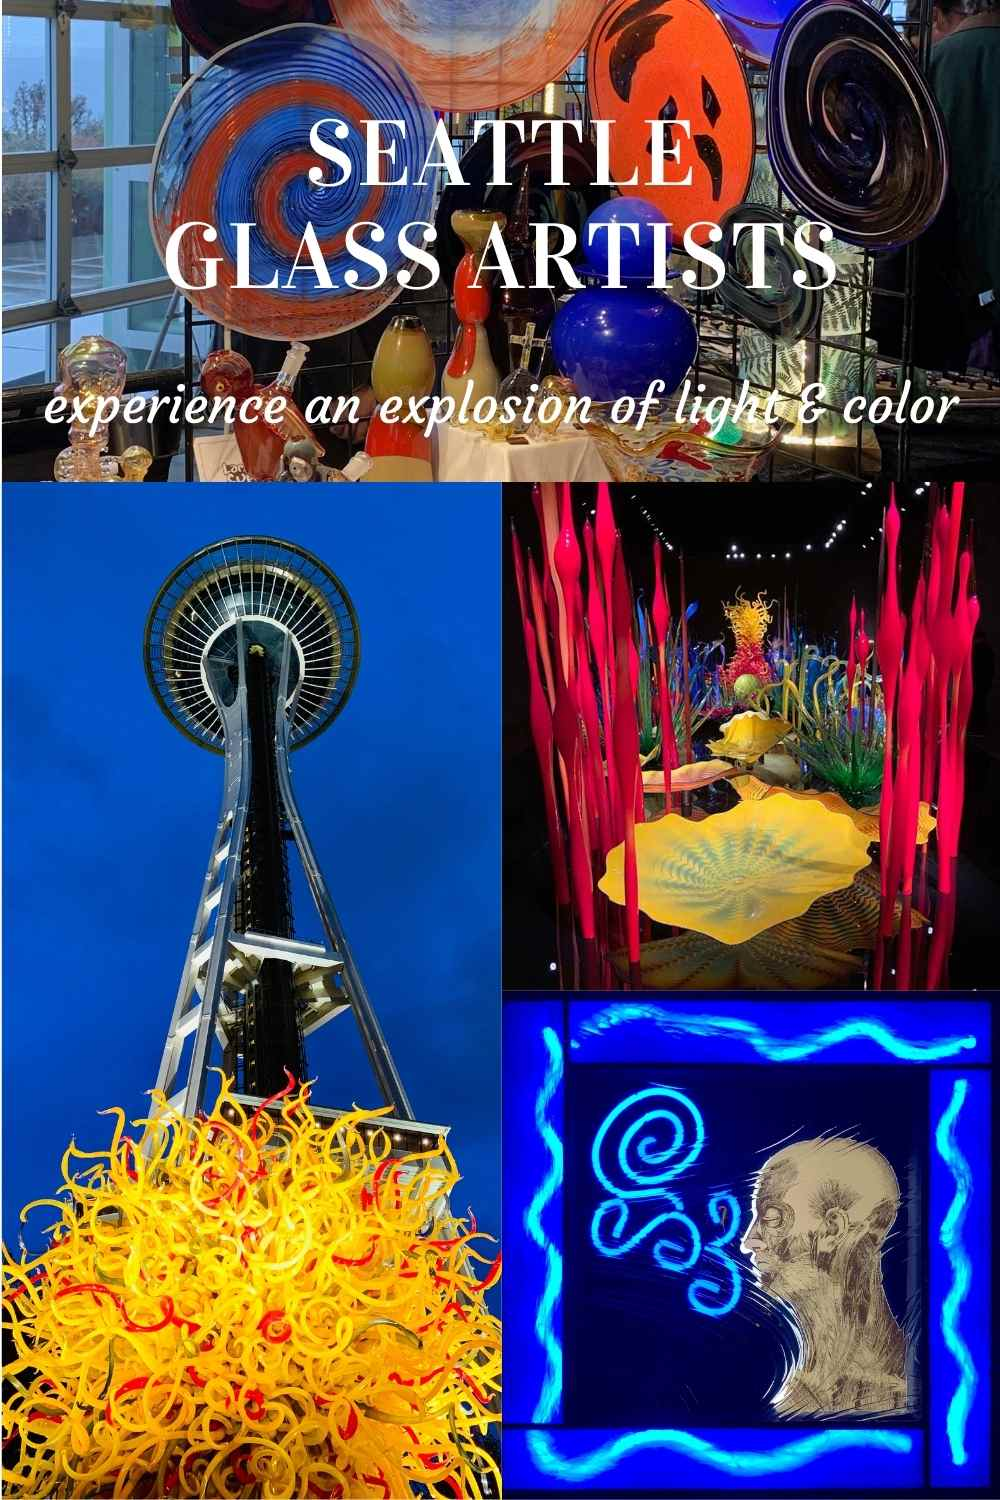 Seattle glass art experience a fiery explosion of light and color with video